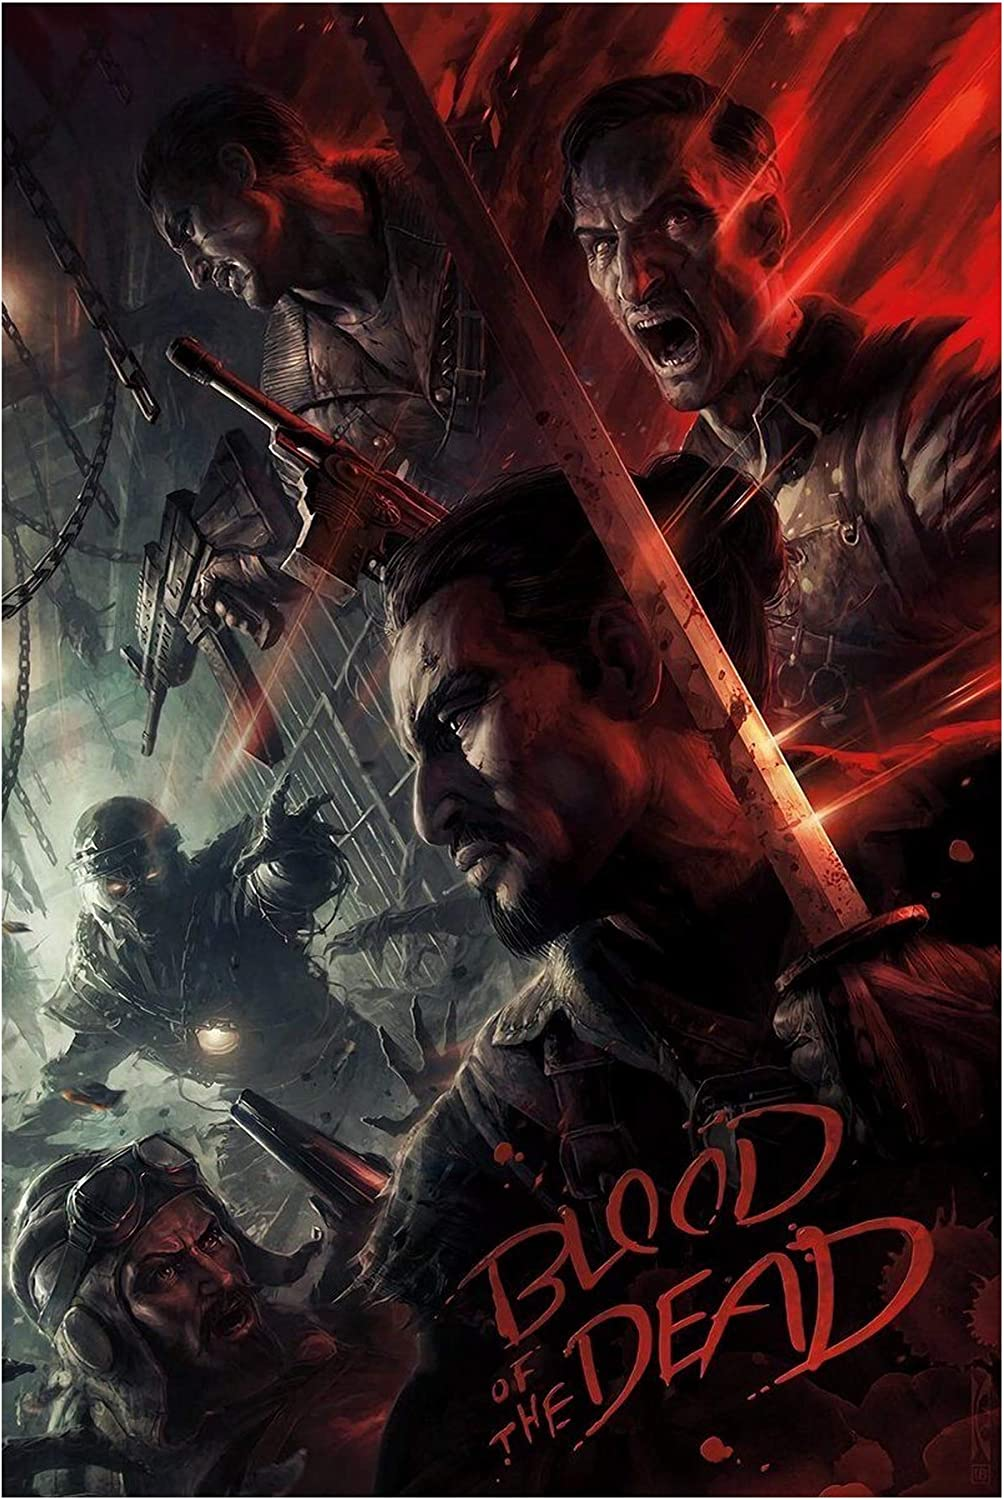 Amazon Com Call Of Duty Black Ops 4 Blood Of The Dead Zombies Art Print Size 13x20 24x36 27x40 32x48 24 X36 60x91cm Posters Prints